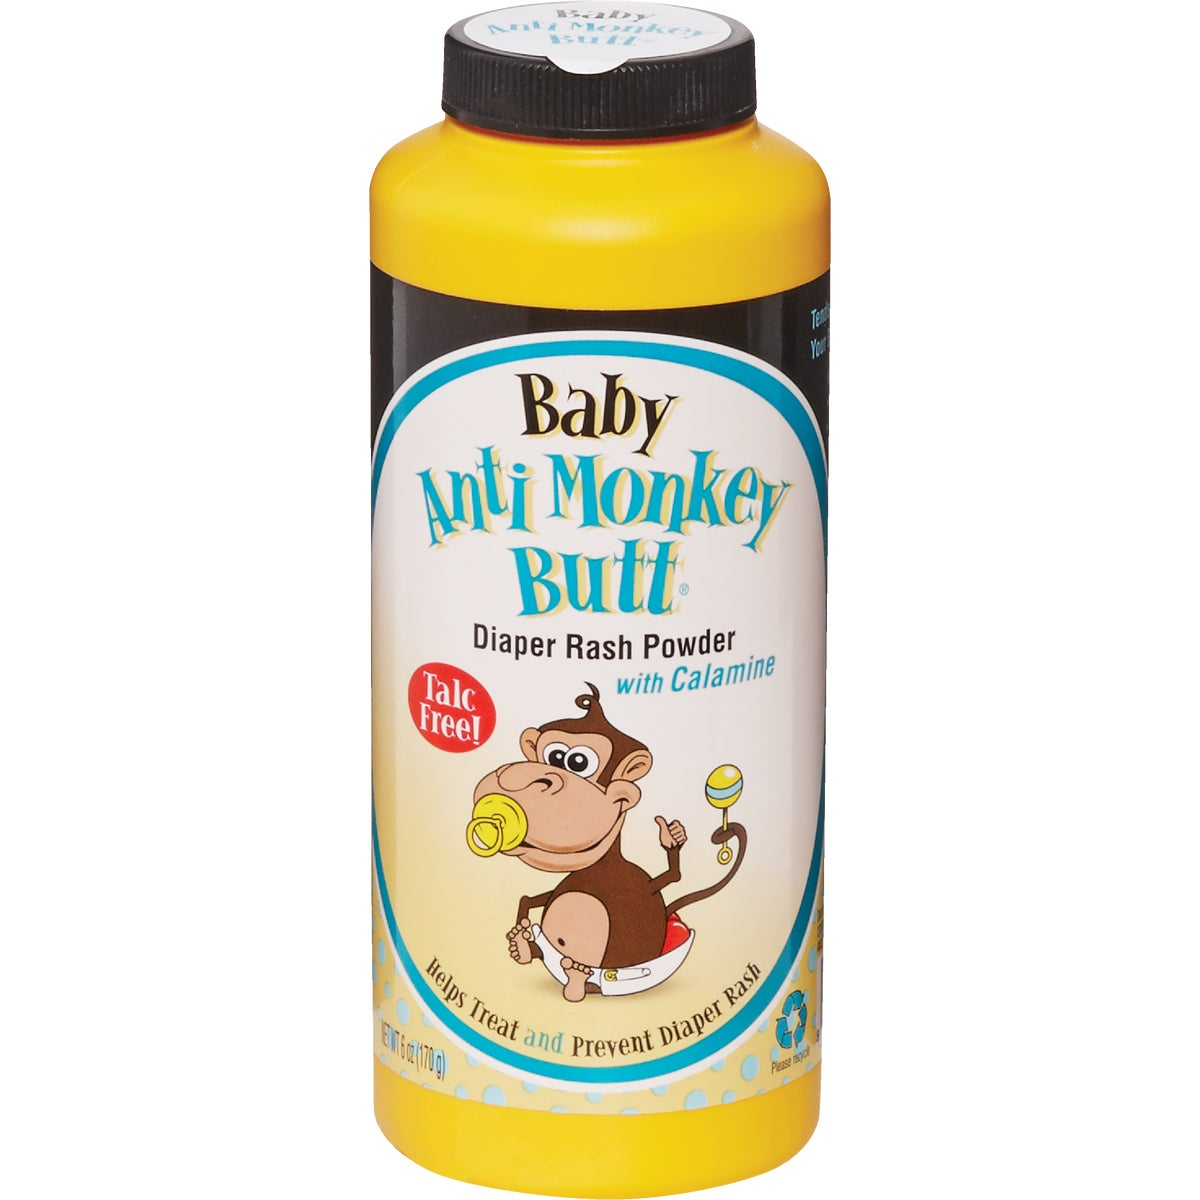 6OZ BABY ANTIMNKY POWDER - 00030 by Anti Monkey Butt Dse